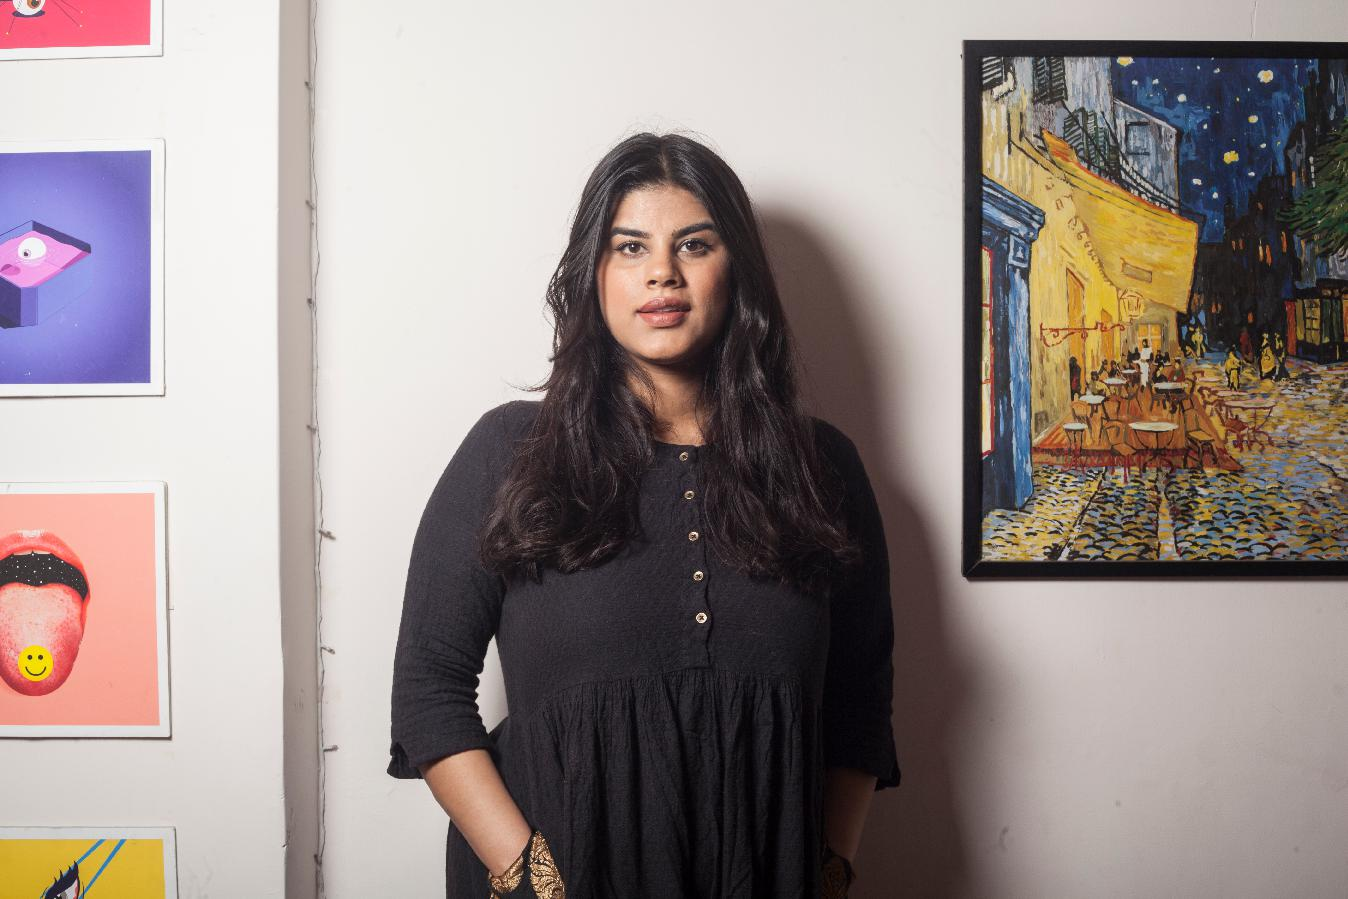 Mahima Kukreja: She is also a  #MeToo Crusader and Writer and has voiced her strong opinion about the sexual harassment cases at the workplace.